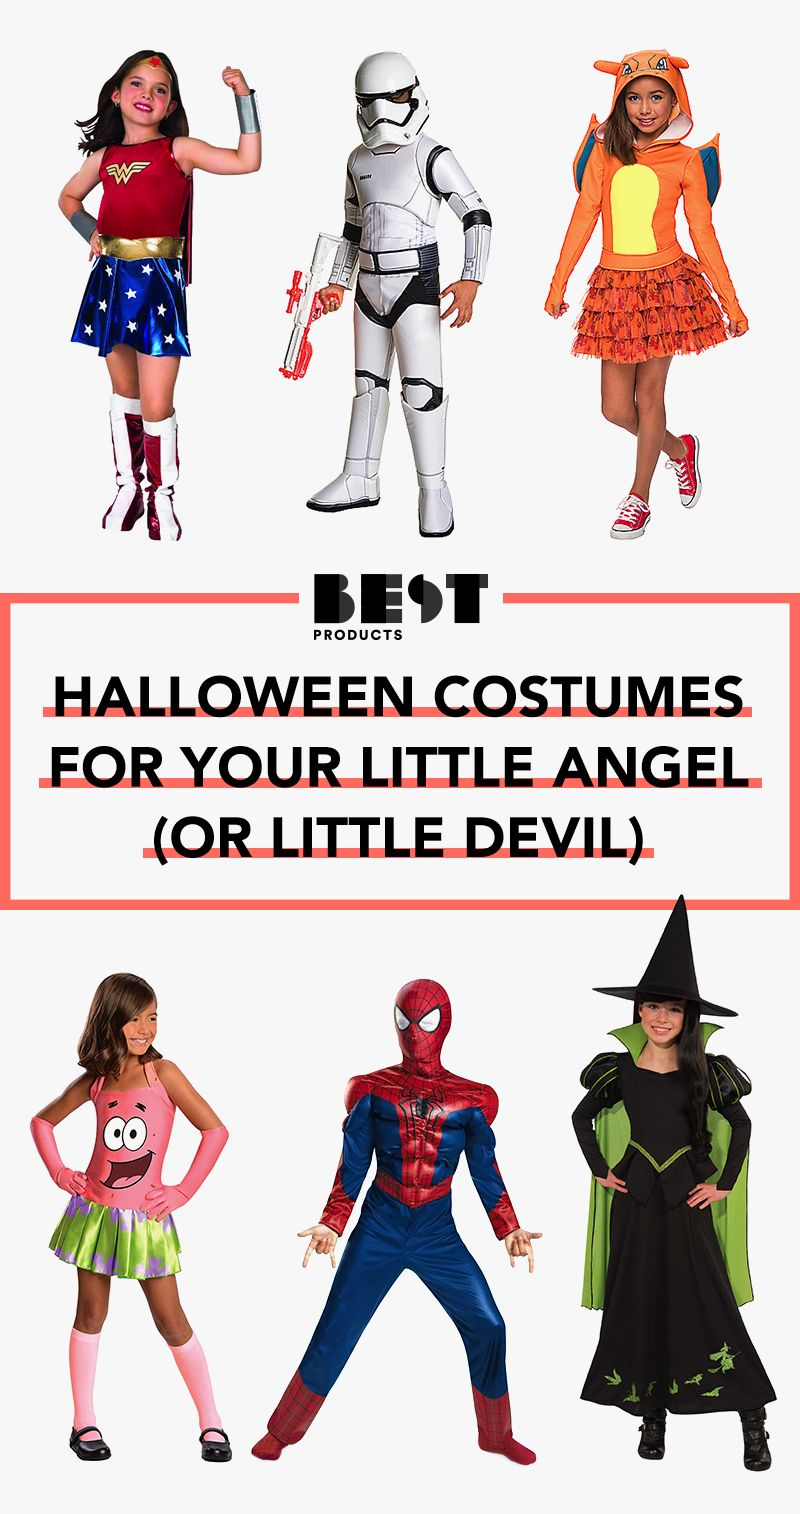 19 best halloween costumes for kids 2018 - kids halloween costumes